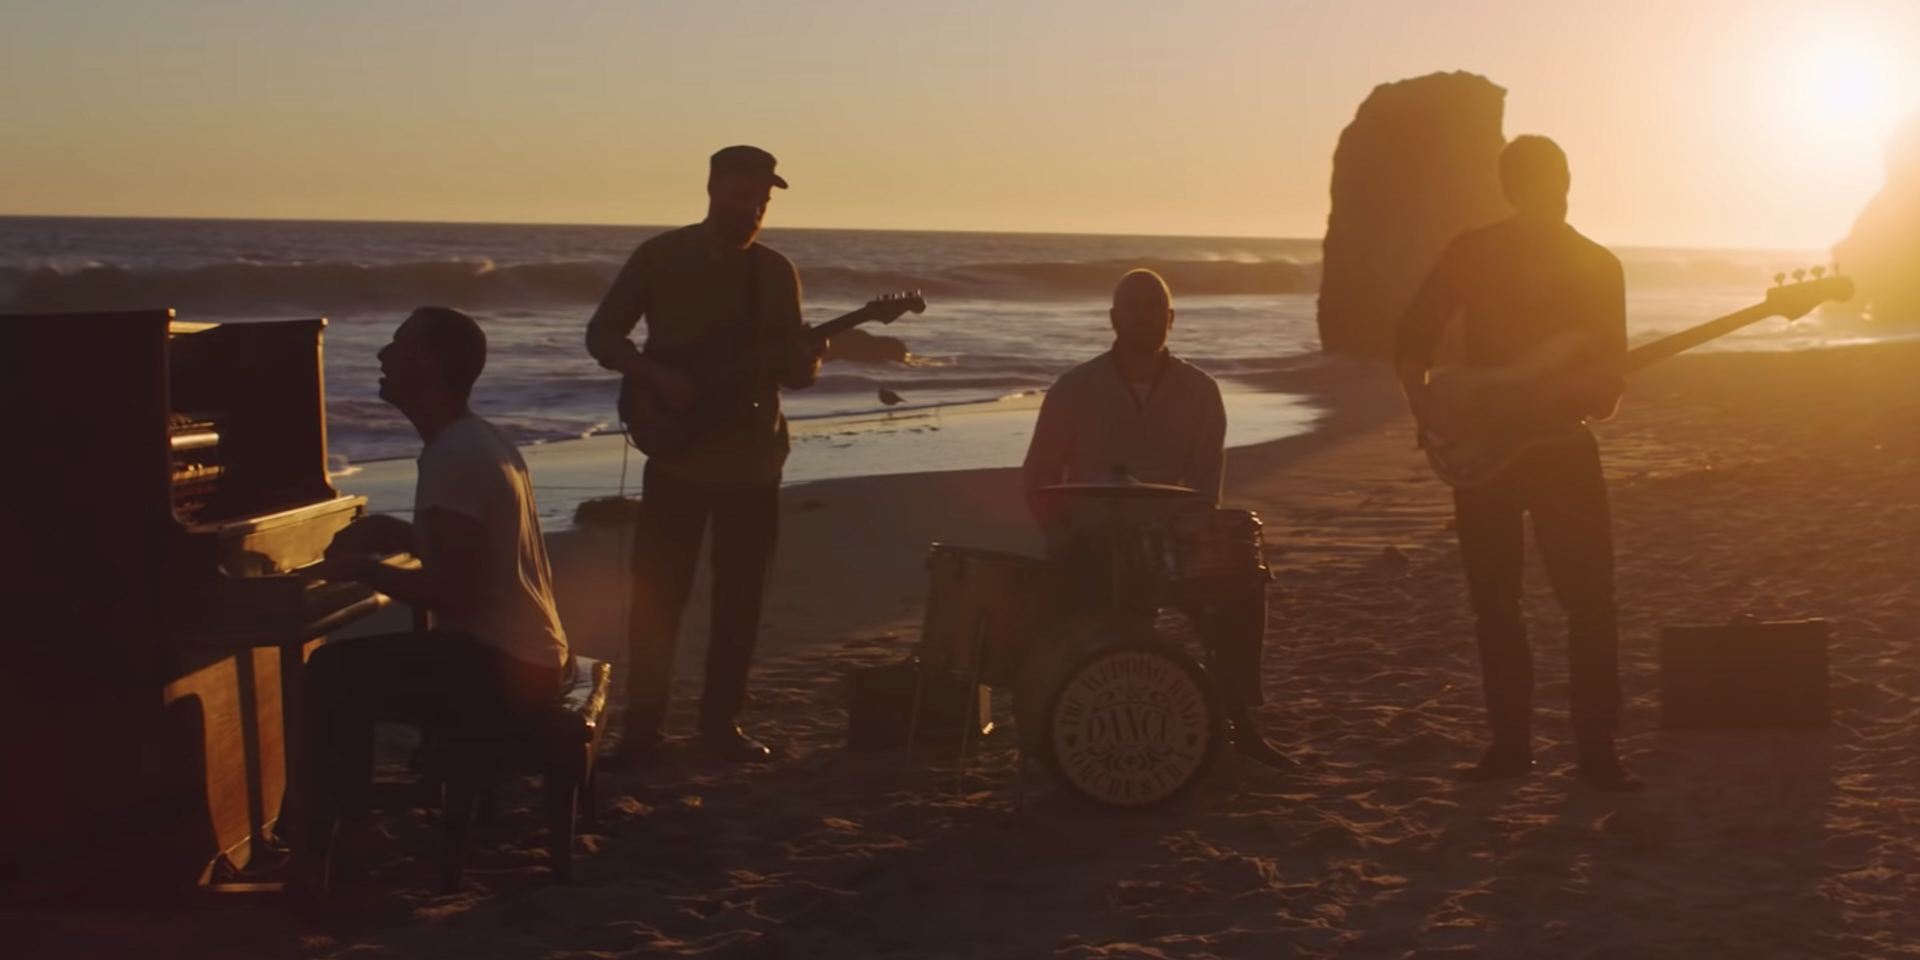 Coldplay unveils moving music video for 'Everyday Life'